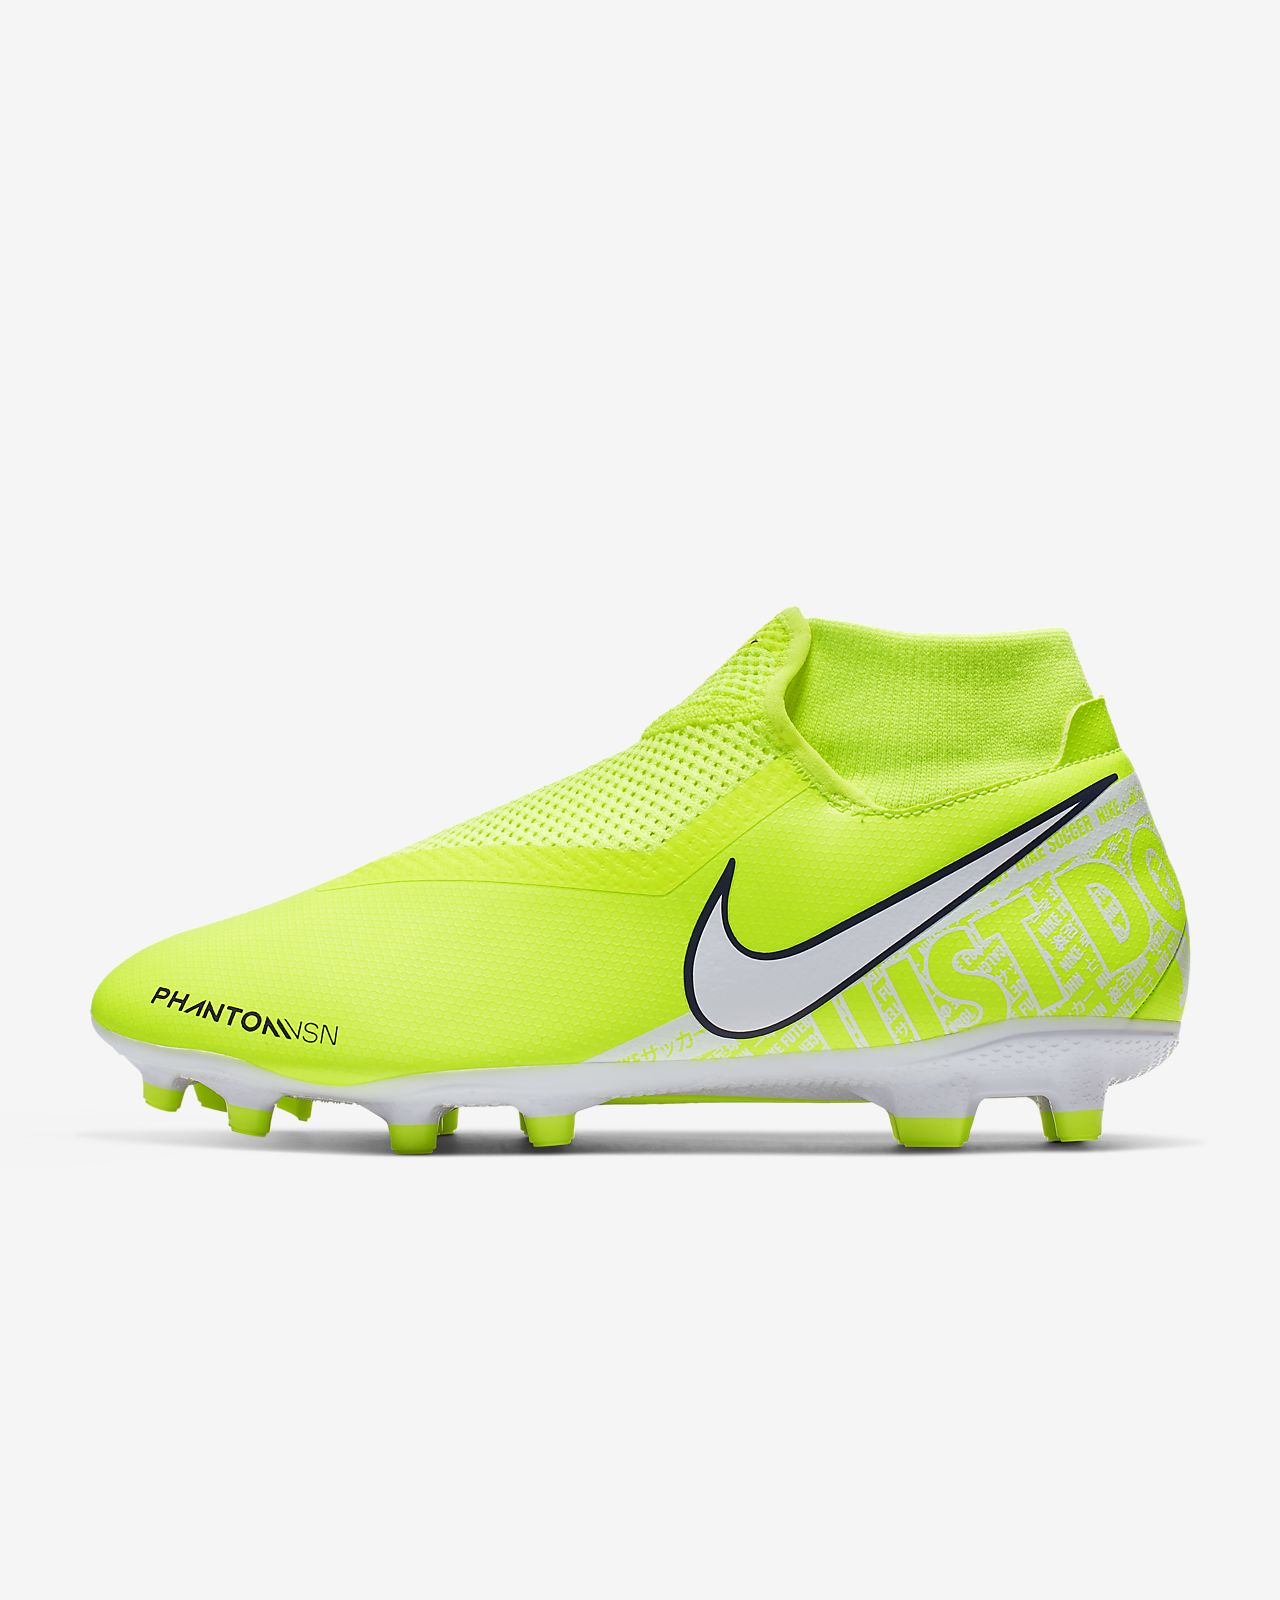 Calzado de fútbol para múltiples superficies Nike Phantom Vision Academy Dynamic Fit MG